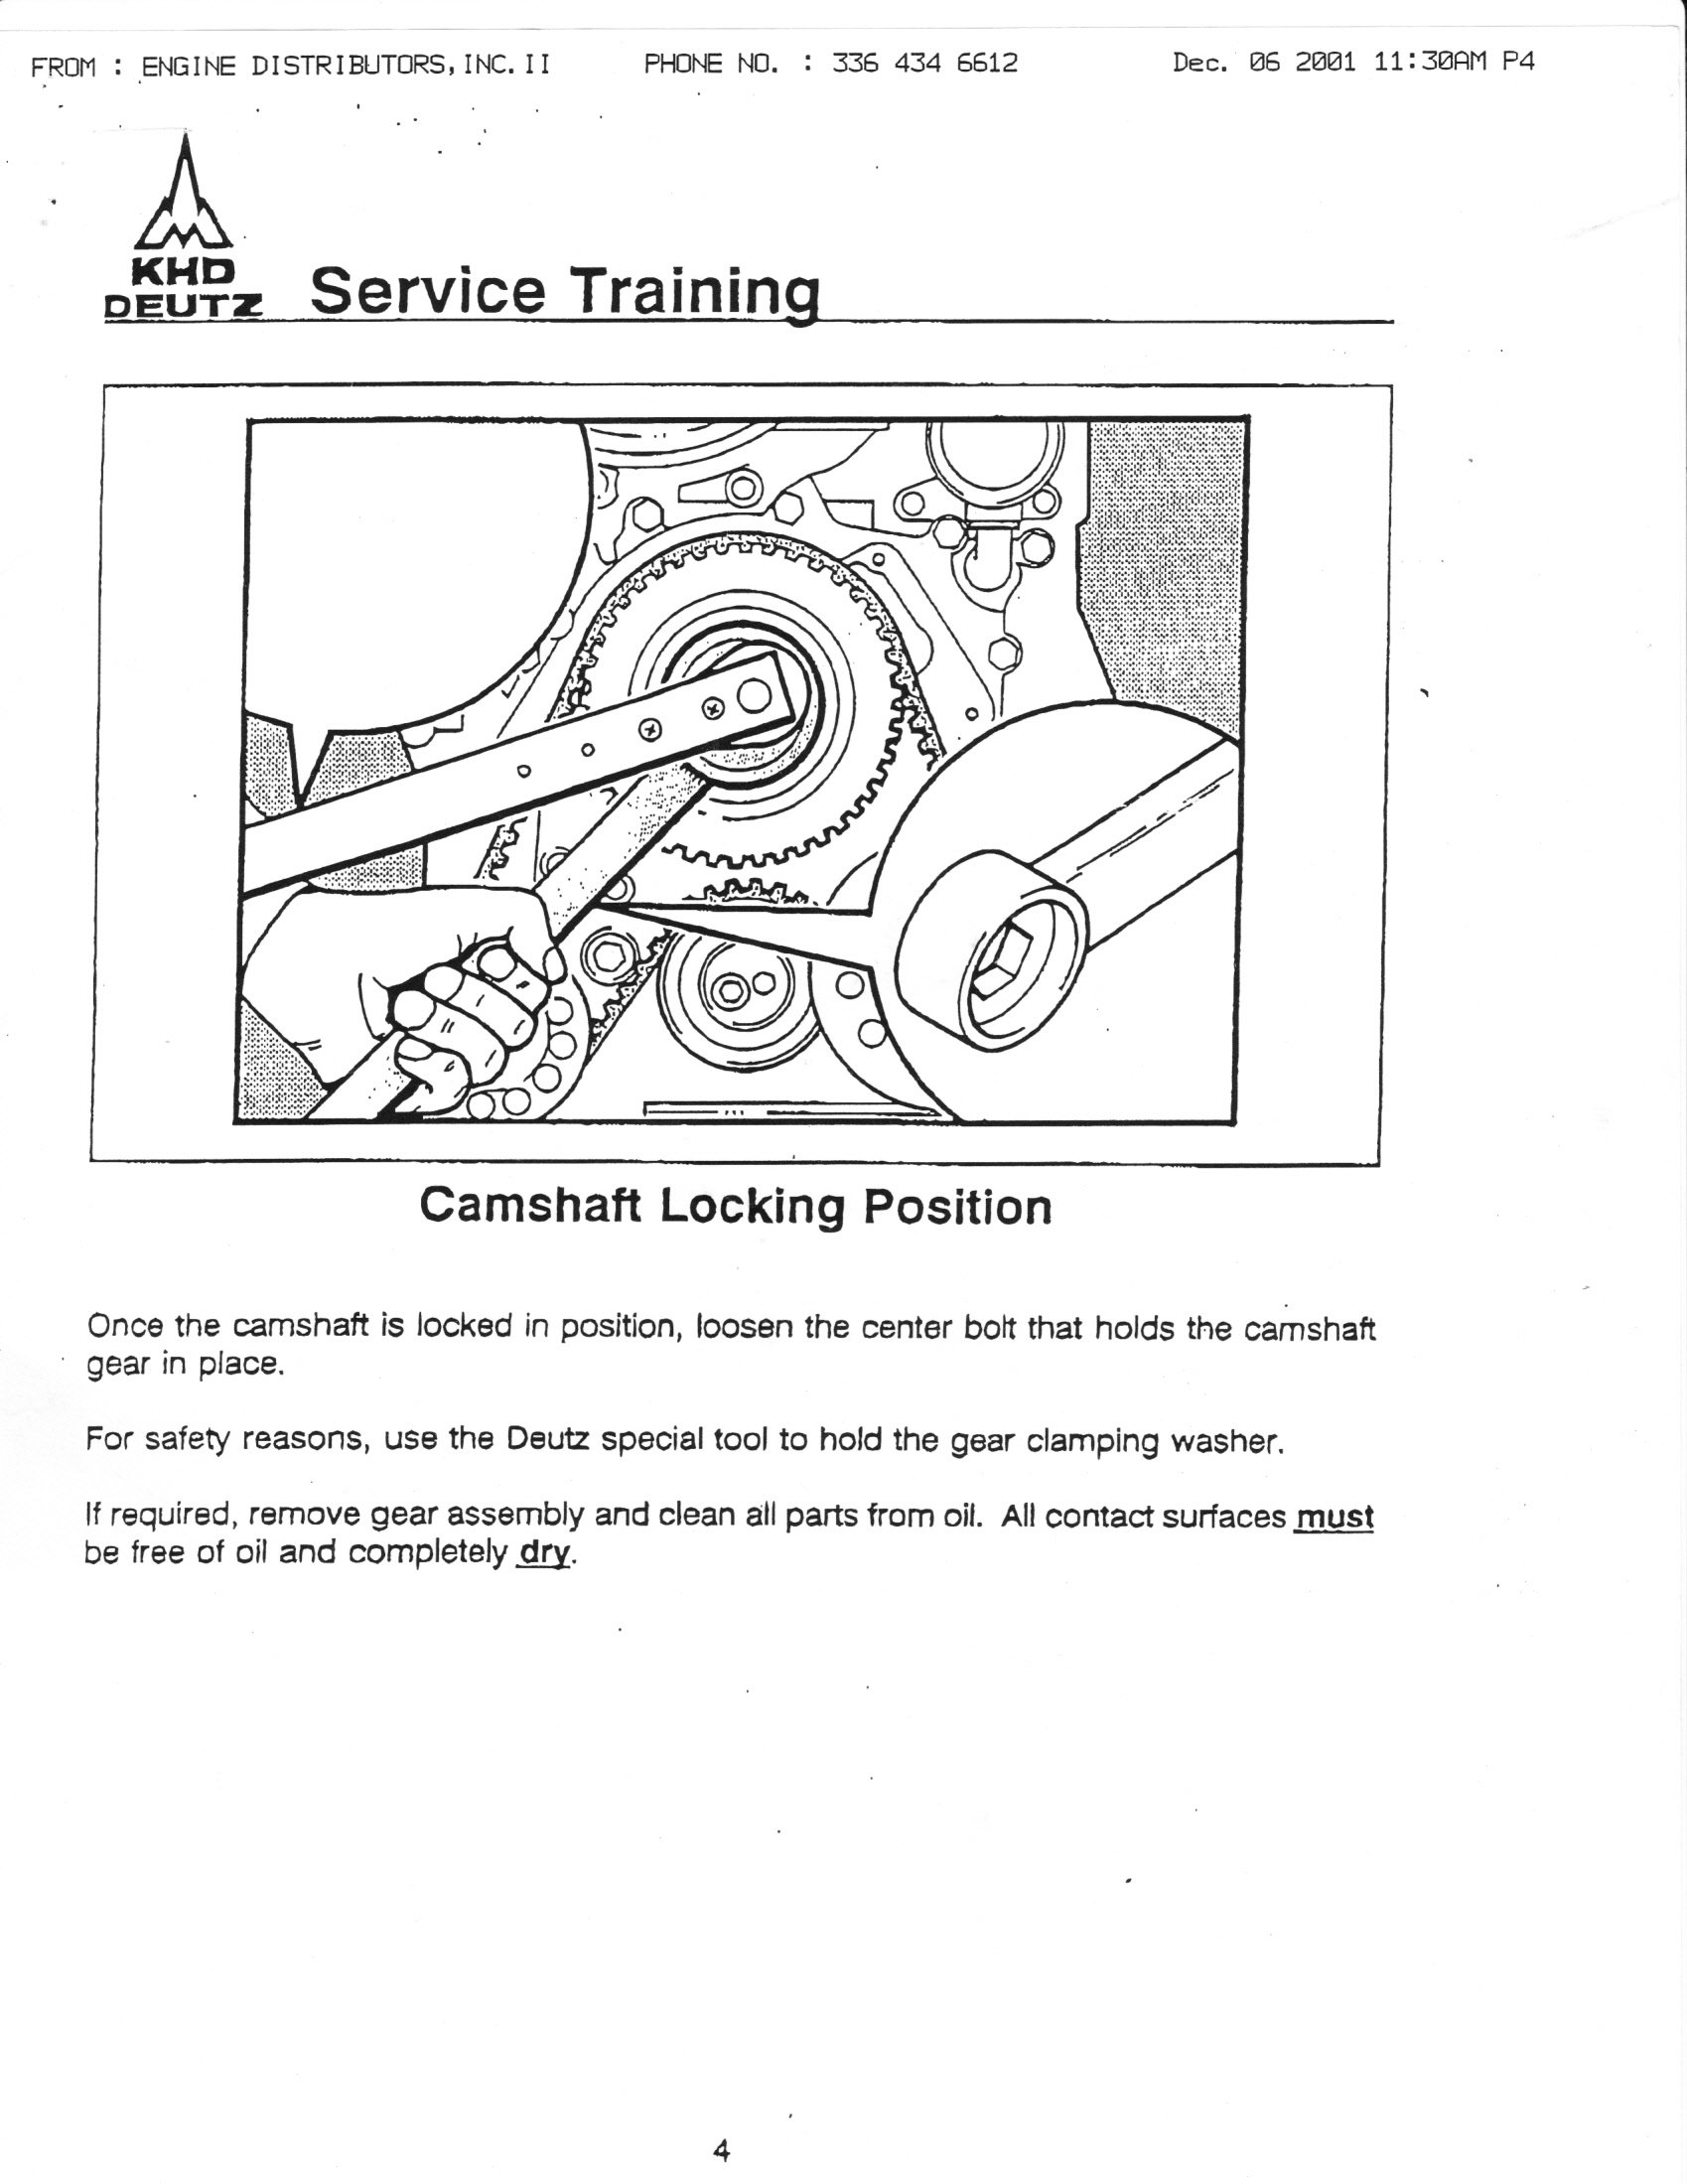 i need a workshop manual for a deutz f3l1011f motor or at least the rh justanswer com deutz f3l1011f workshop manual deutz f3l1011f service manual pdf